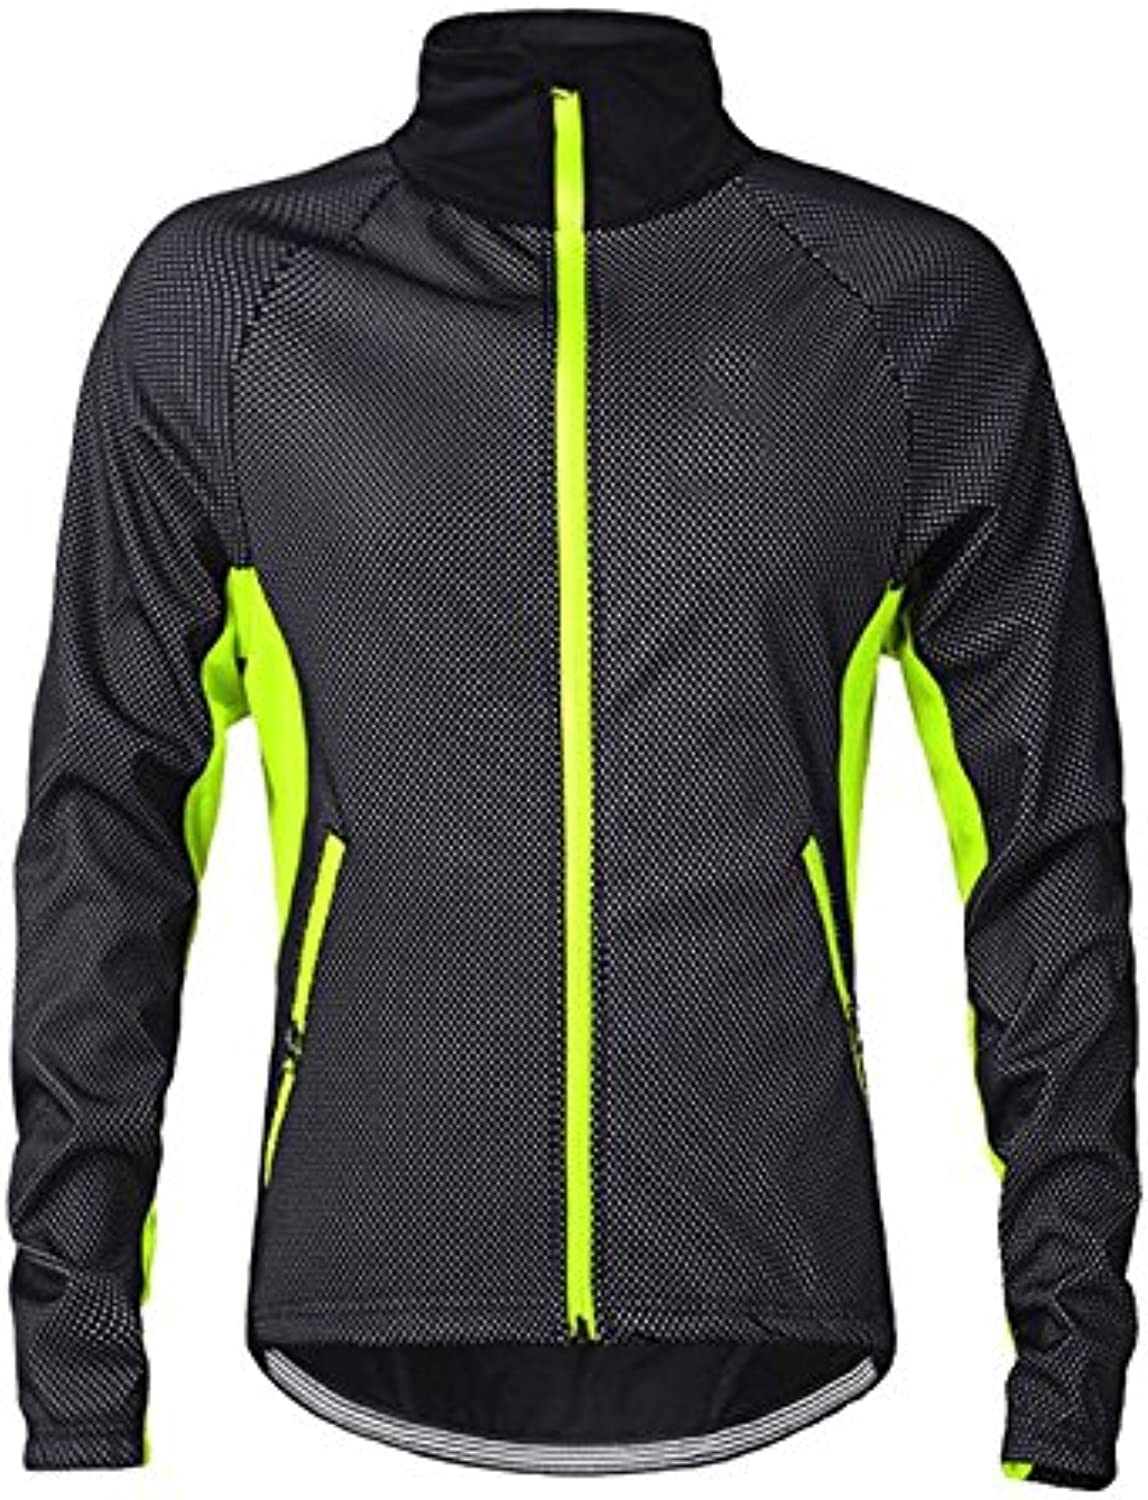 ROOMZOOM 1PC Unique Cycling Coat Long Sleeve Make You Feel More Comfortable Green 3XL